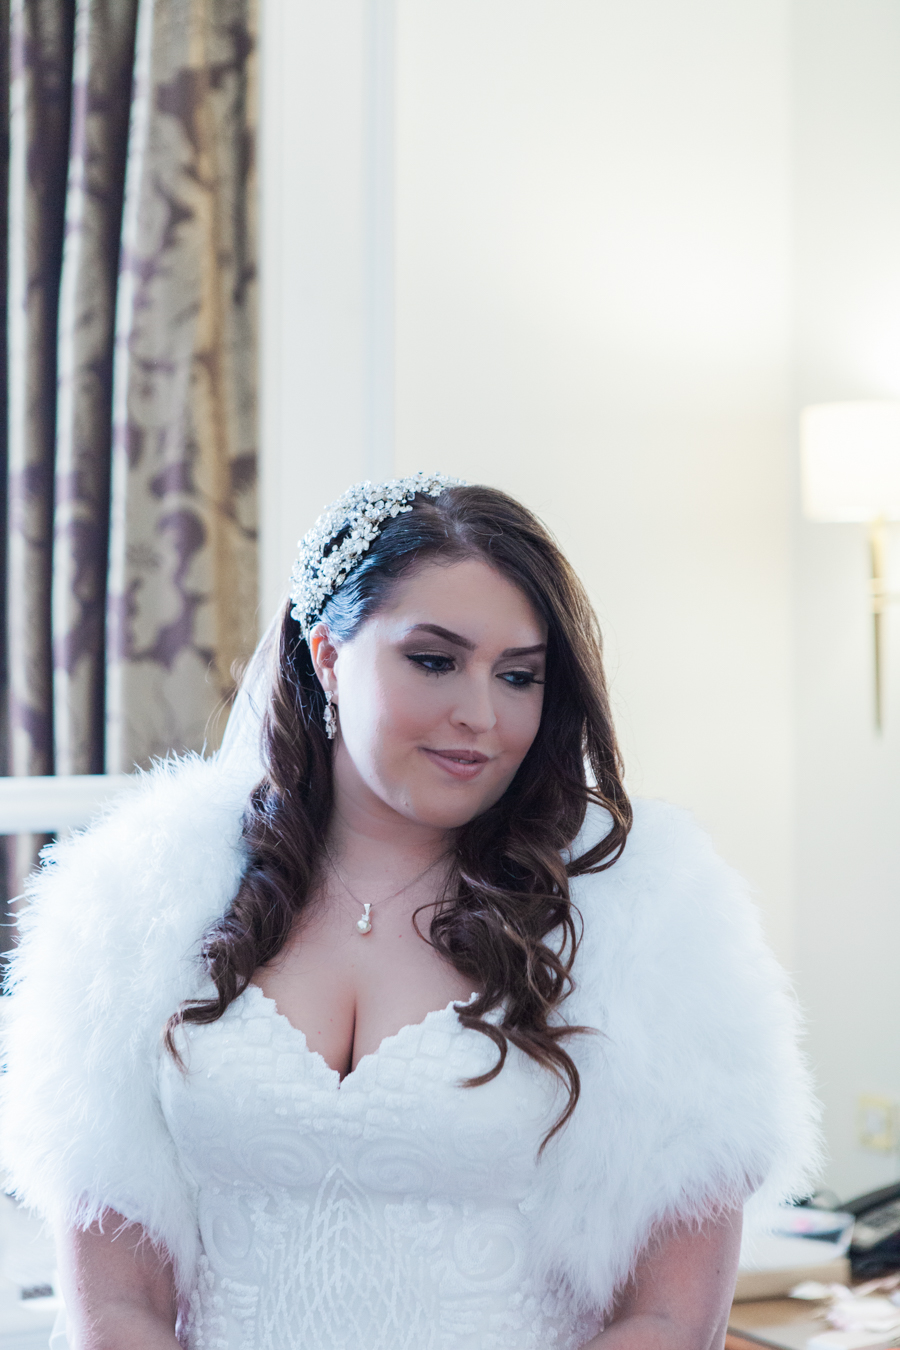 Hendon Hall winter art deco wedding, images by Amanda Karen Photography (7)